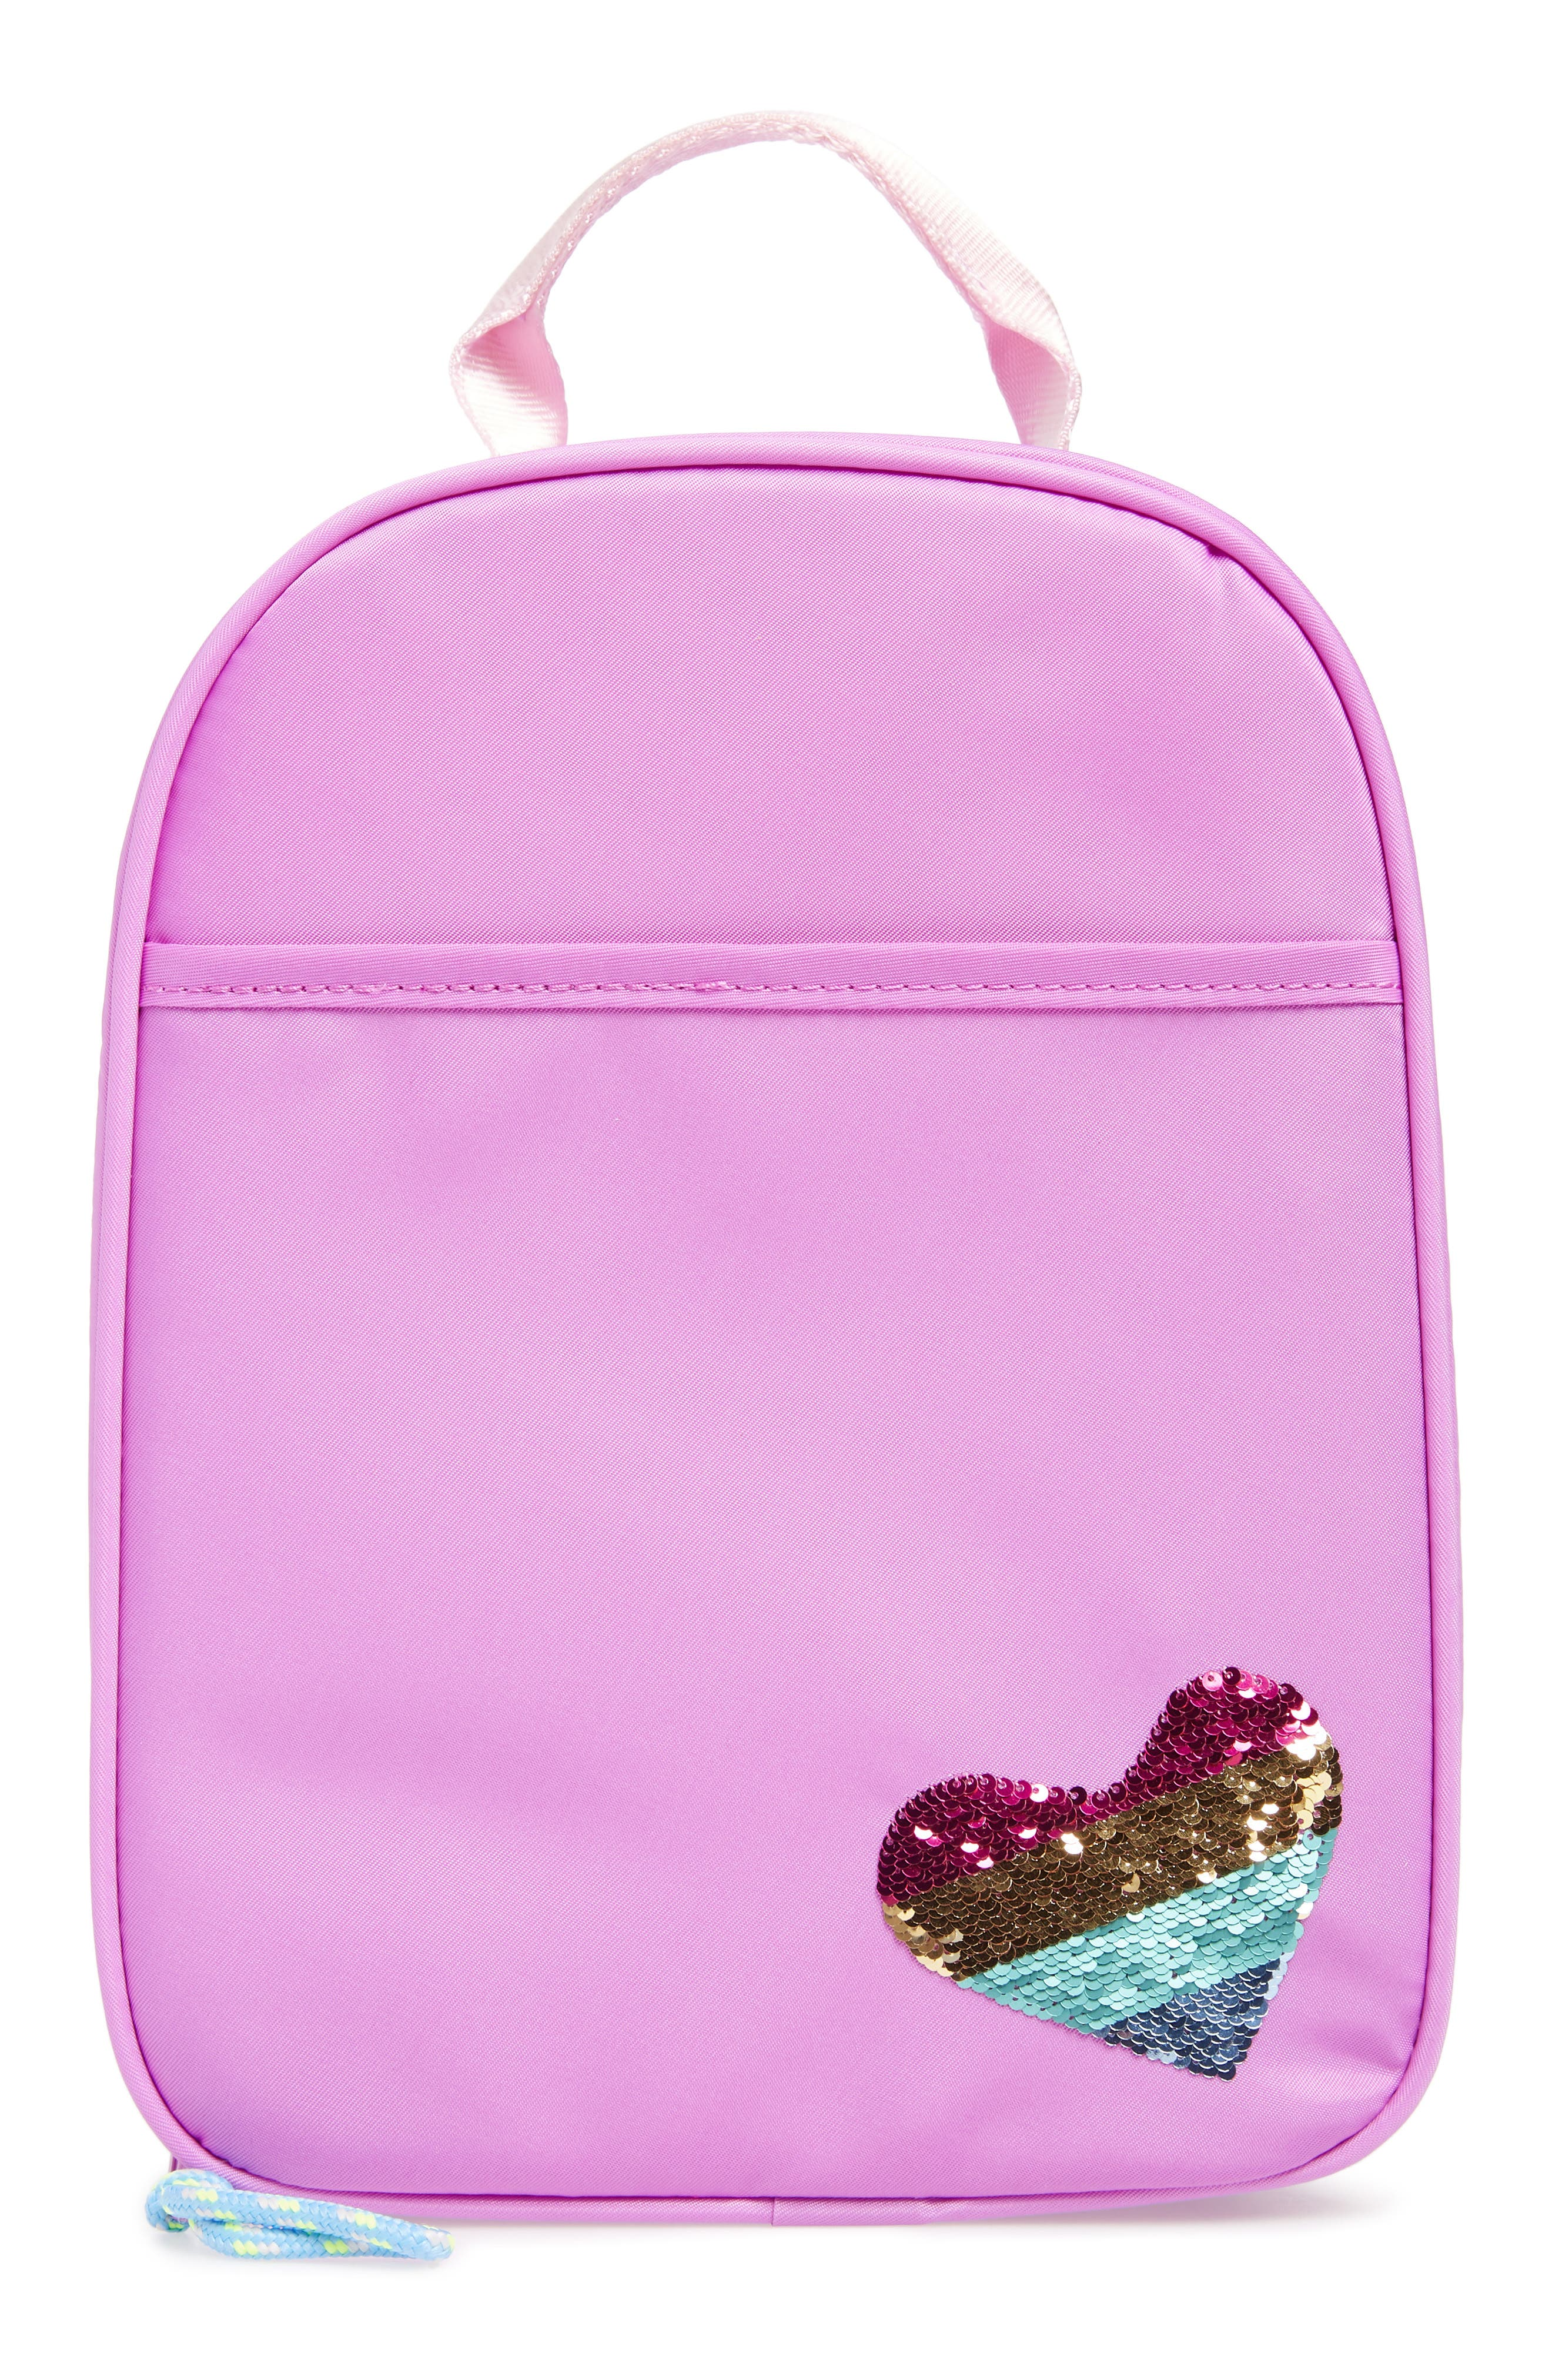 Lunchbox with Reversible Sequin Heart,                             Main thumbnail 1, color,                             950